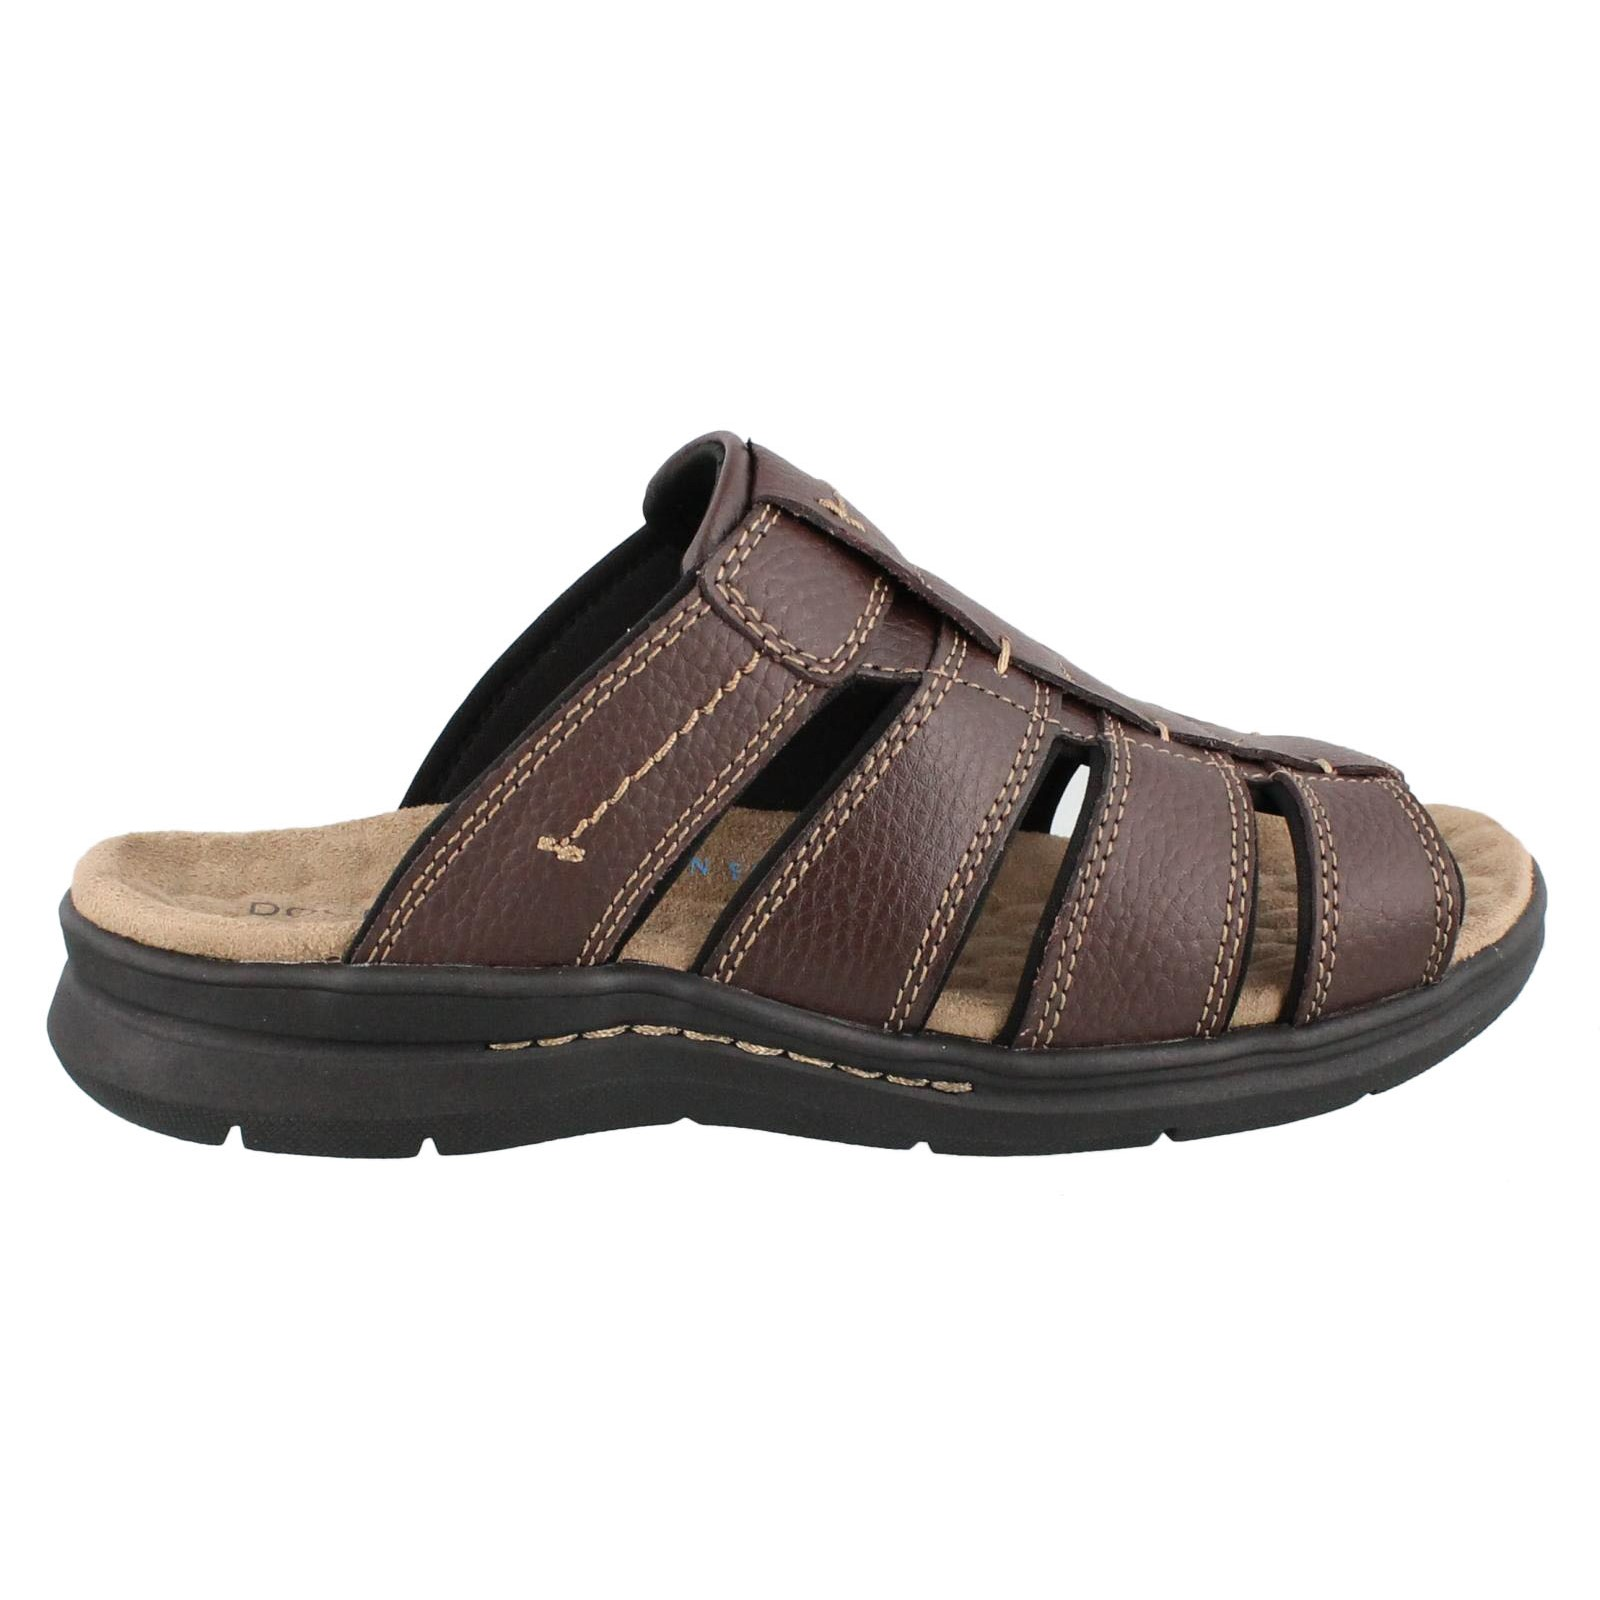 Men's Dockers, Royer Slide Sandal